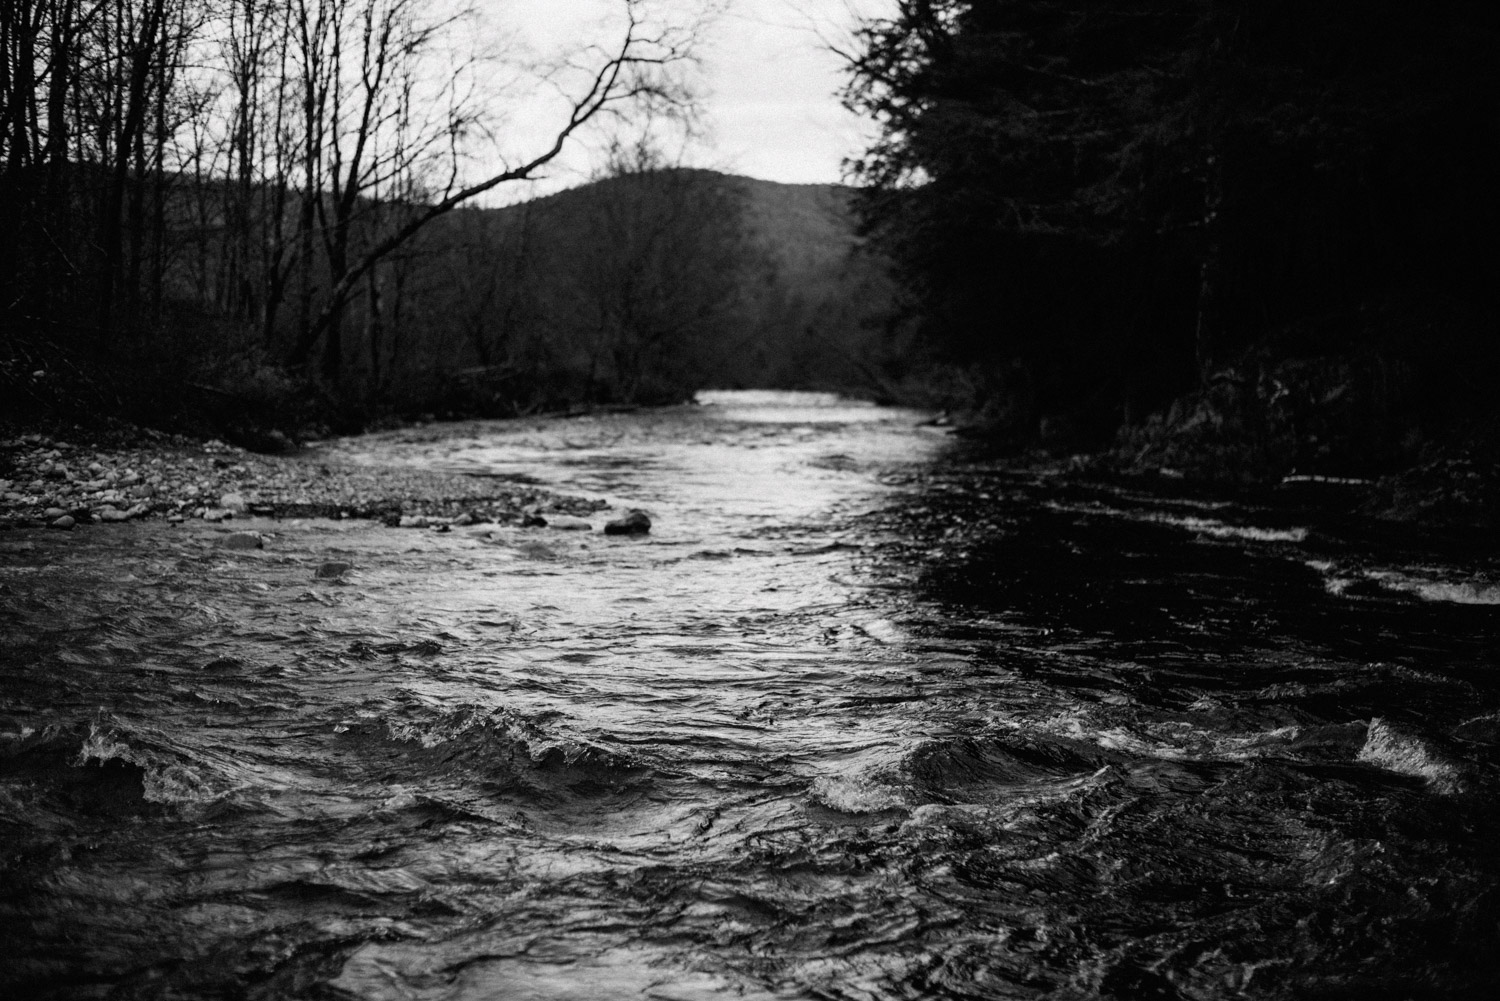 river in pittsfield vermont